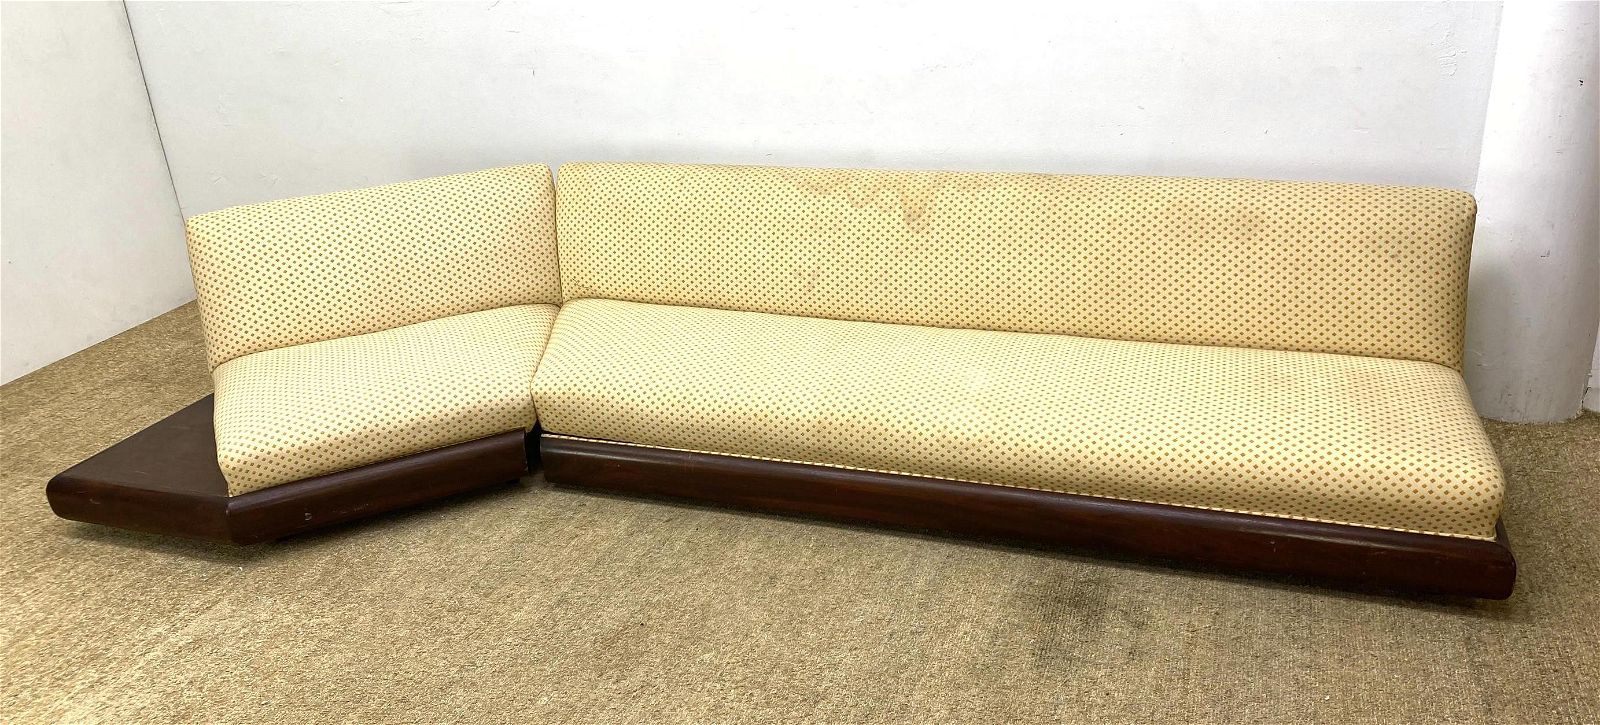 Adrian Pearsall style sectional sofa two pieces. Wood p